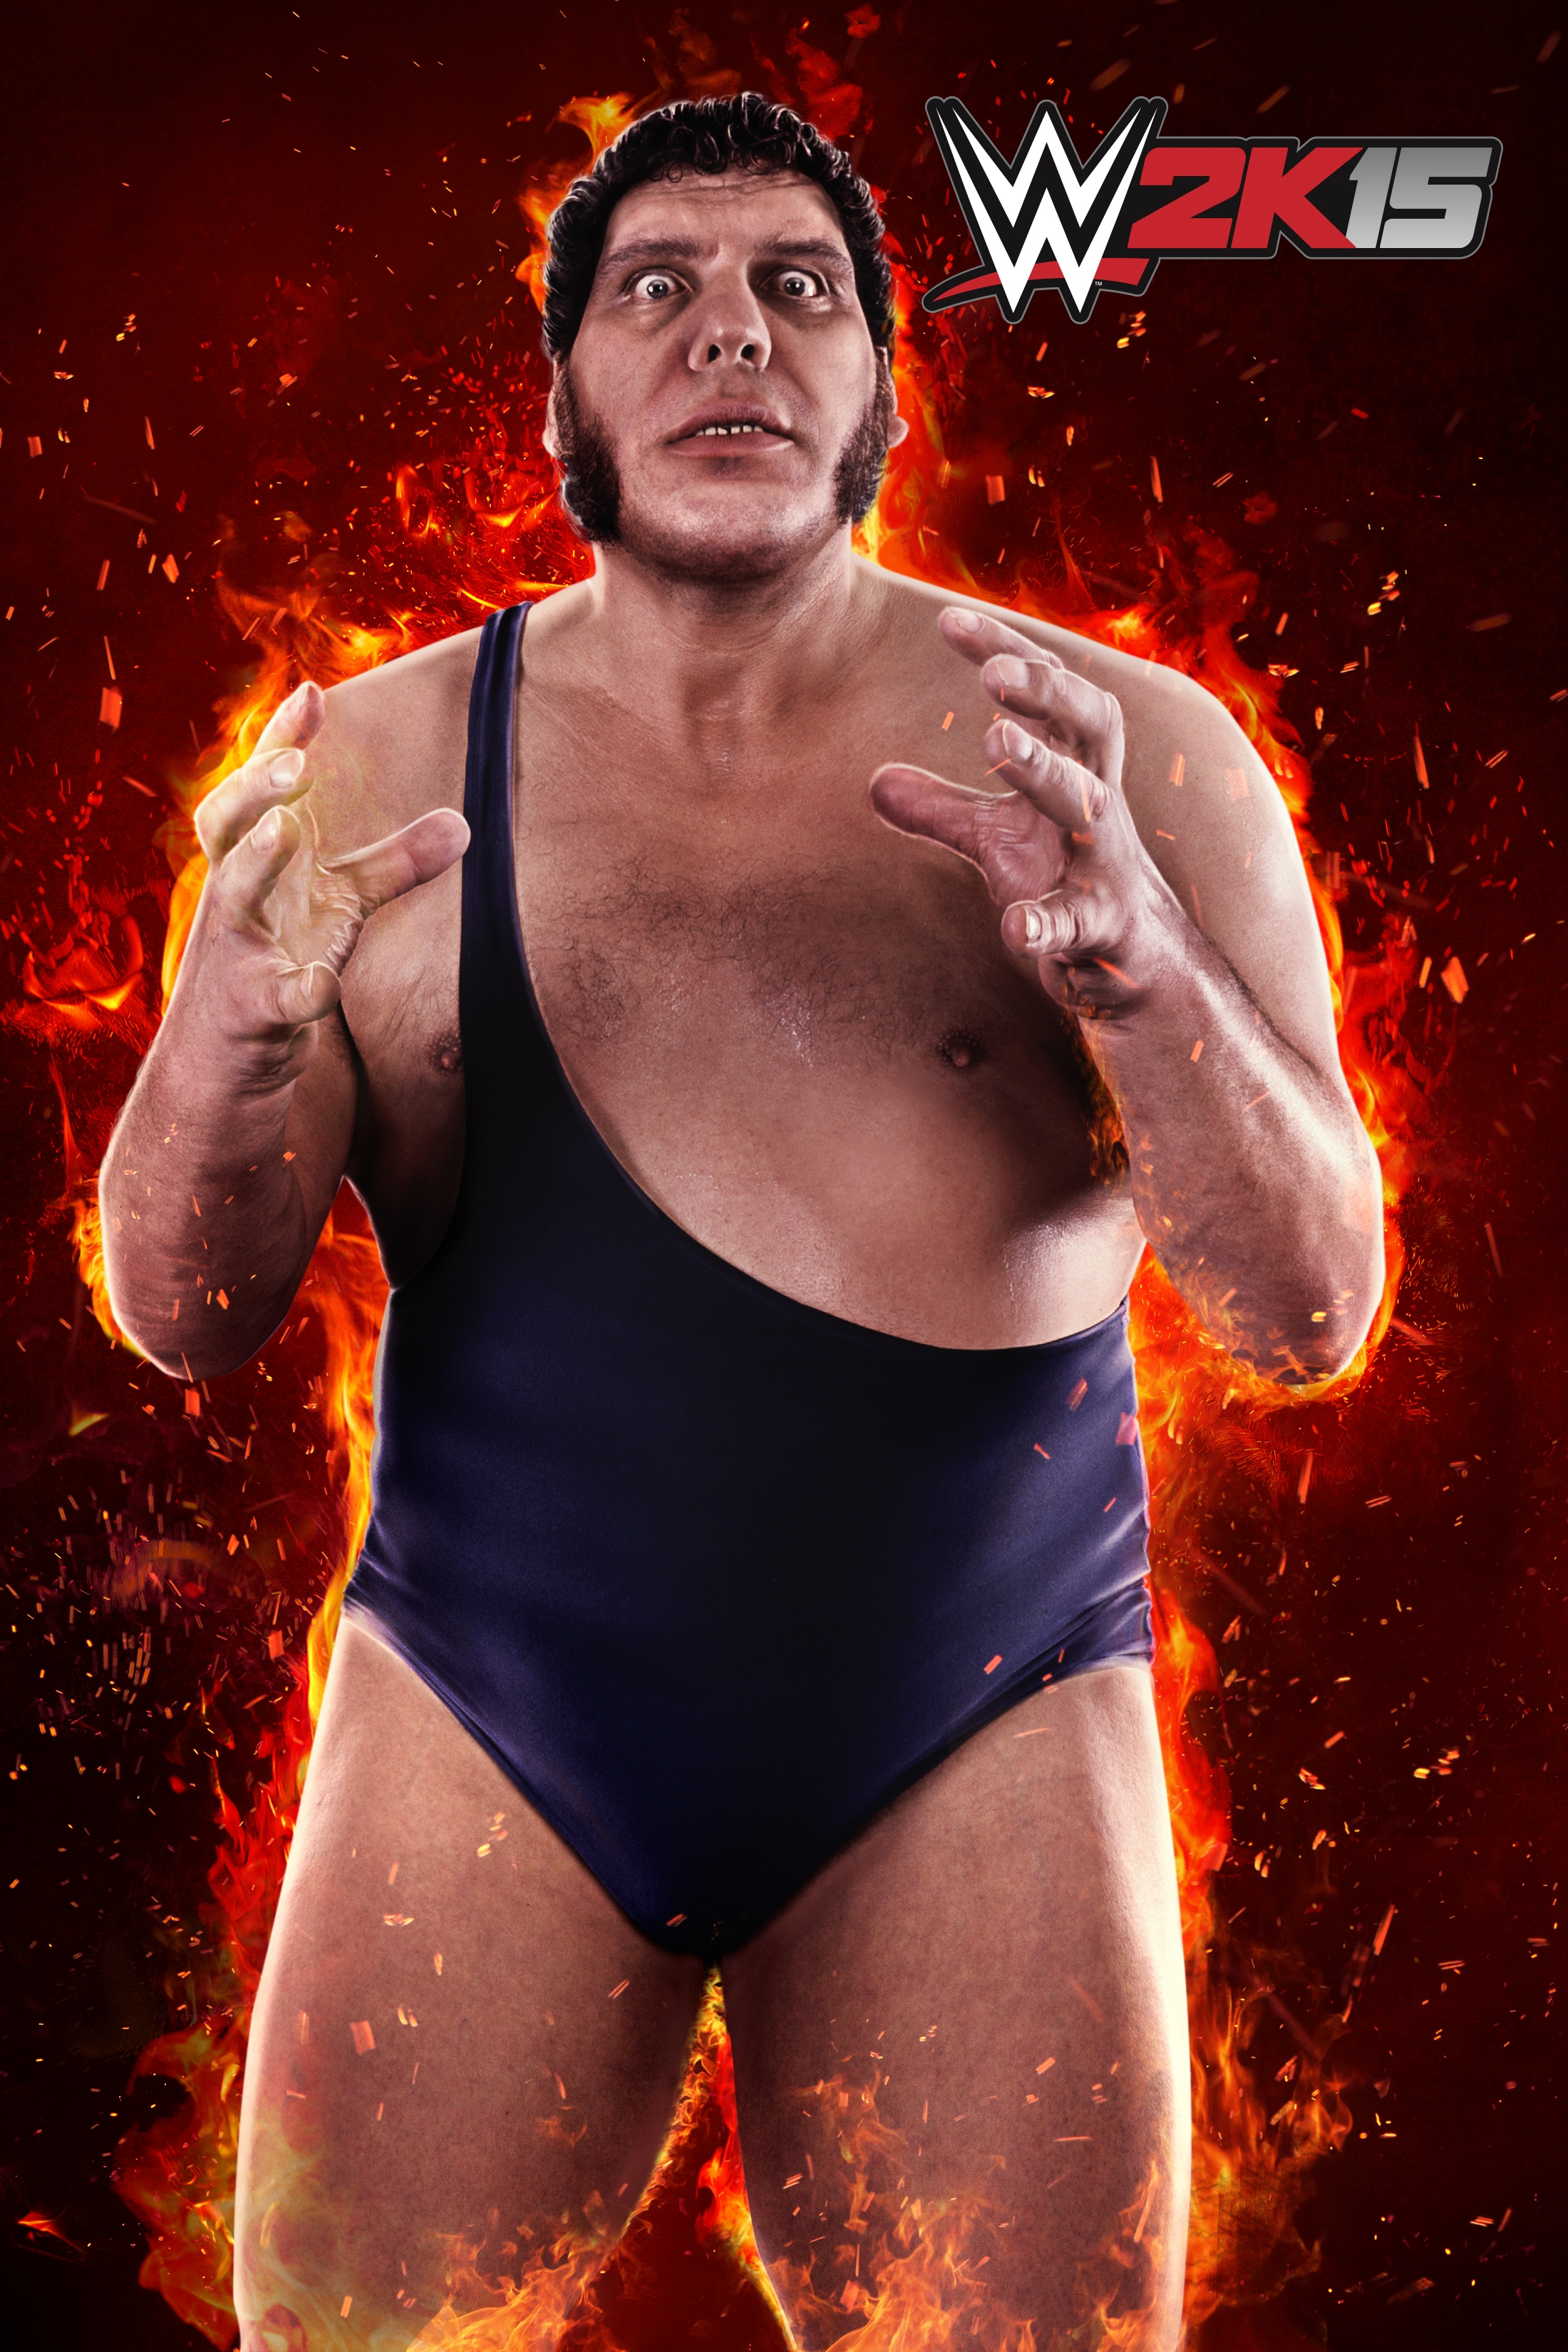 wwe2k15 andre the giant